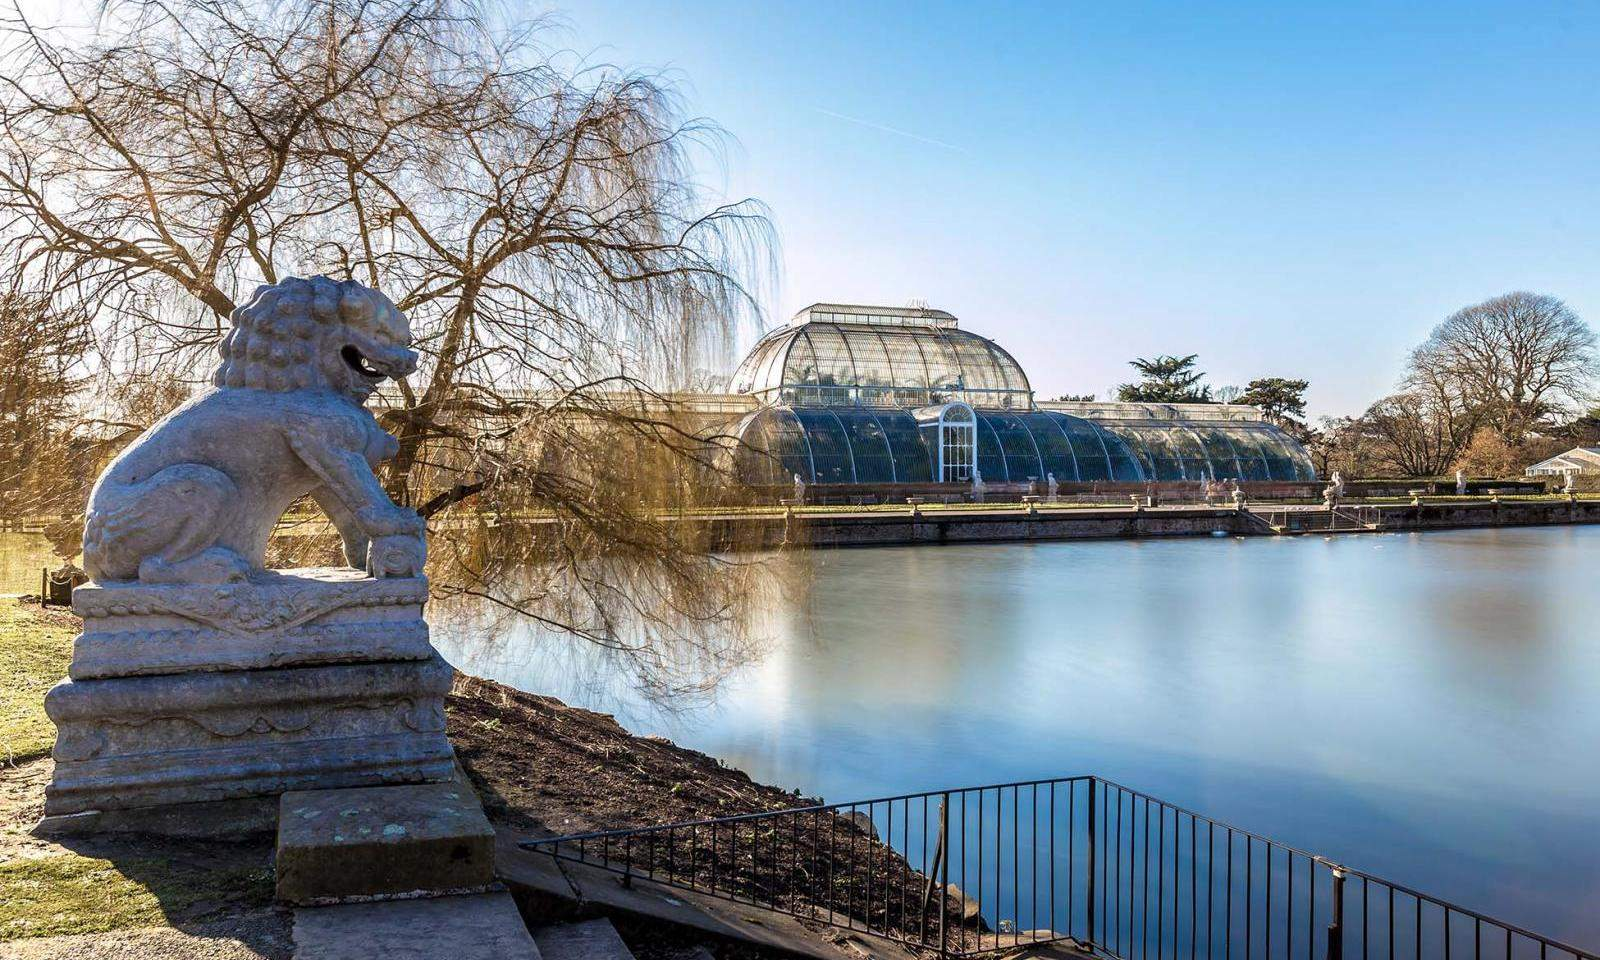 Botanischer Garten London Elegant Kew Gardens London 2020